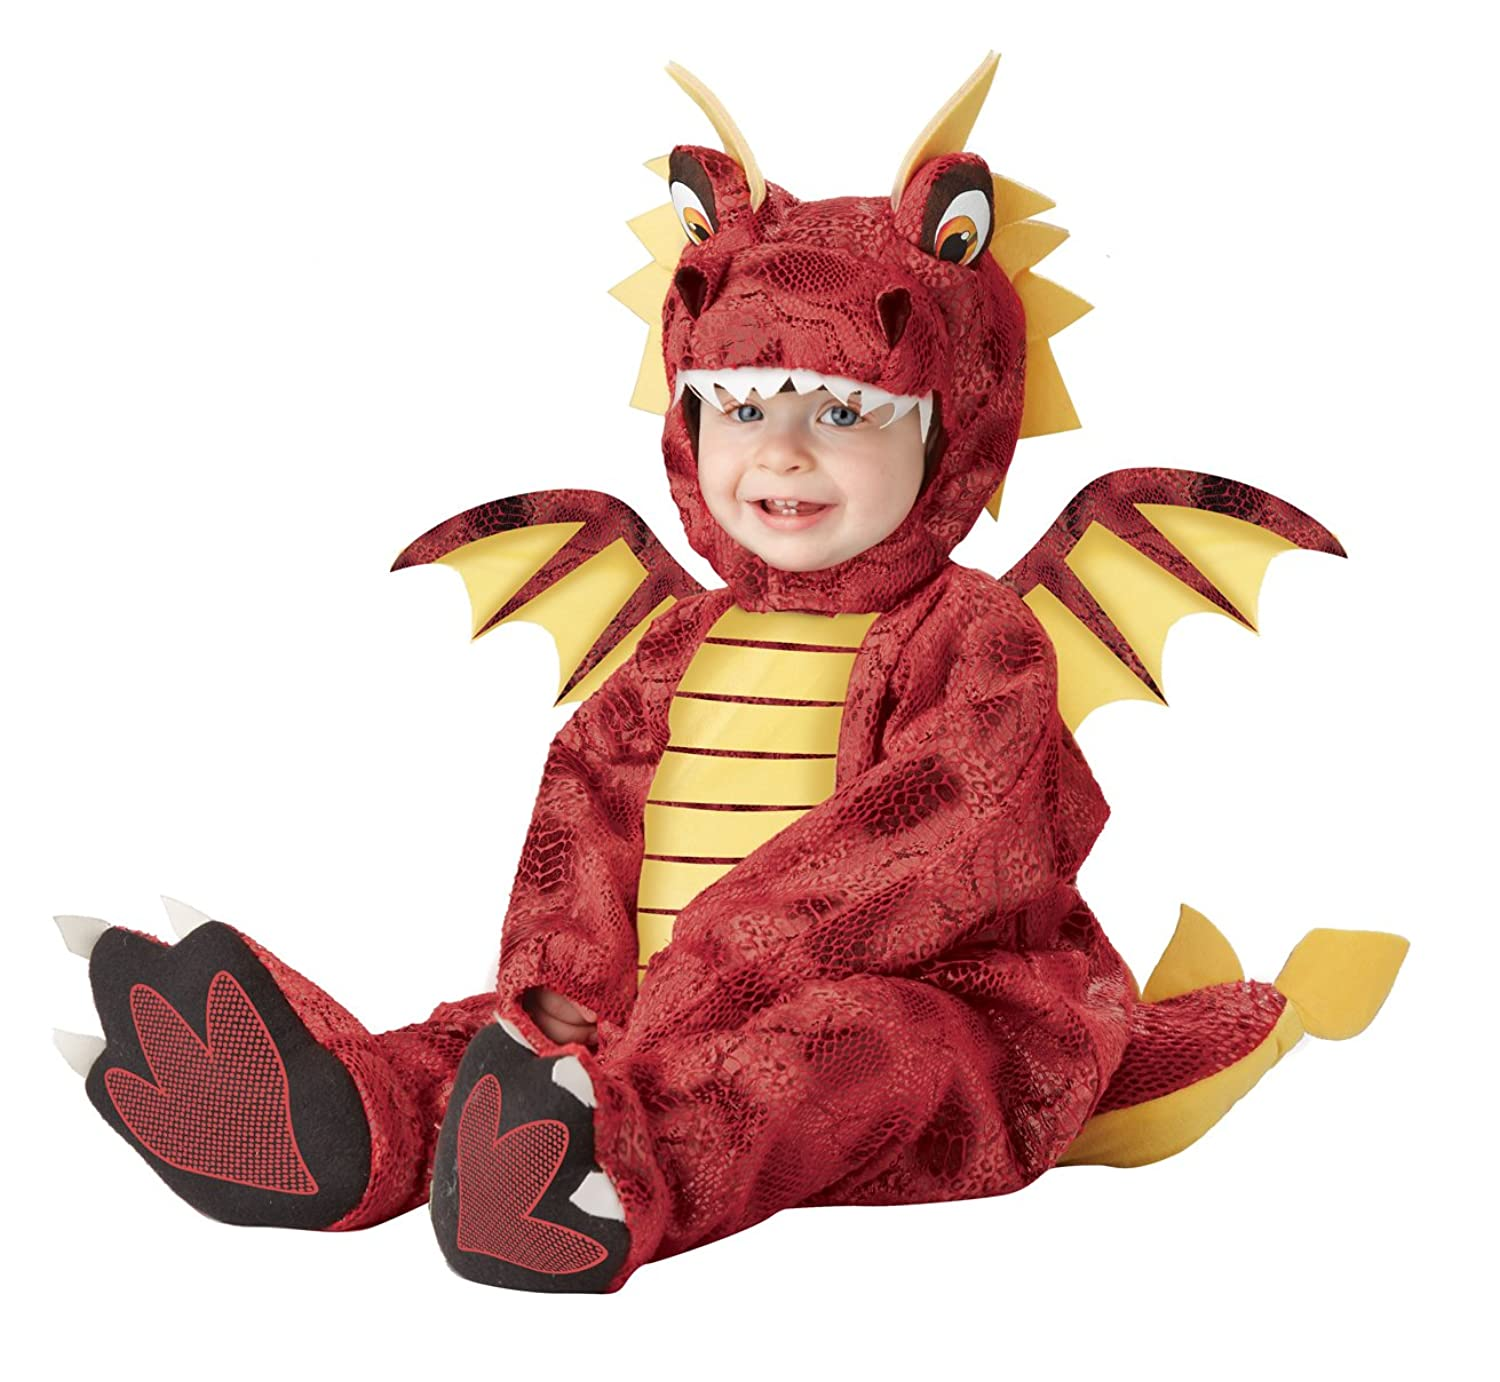 Amazon.com: California Costumes Adorable Dragon Infant: Clothing